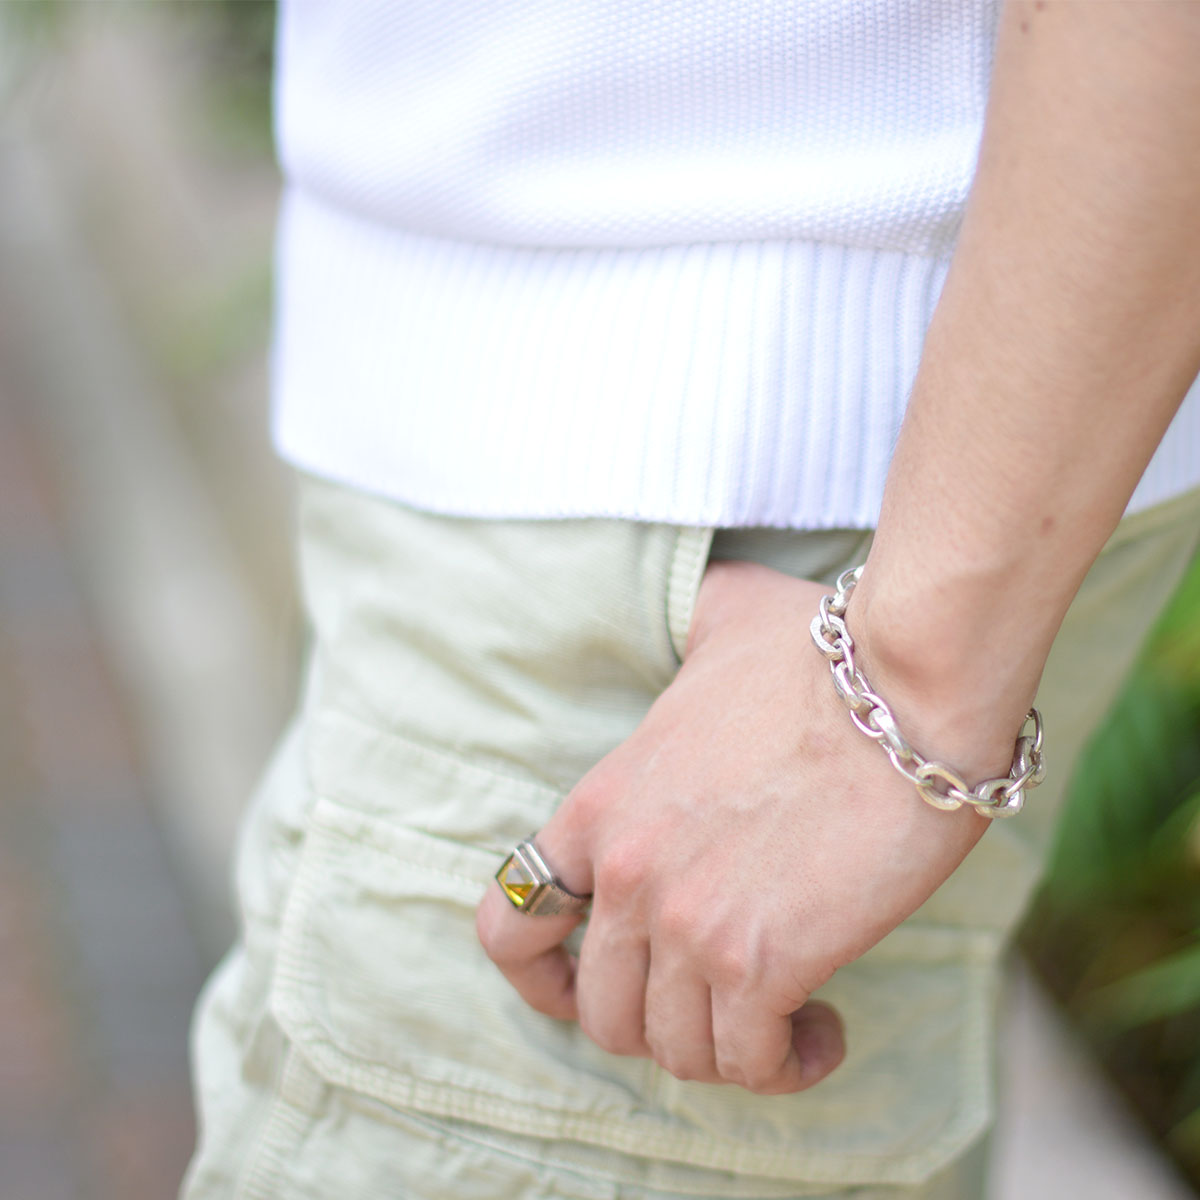 Henson【ヘンソン】 ブレスレット CARVED LINKS CHAIN BRACELET silver(シルバー)